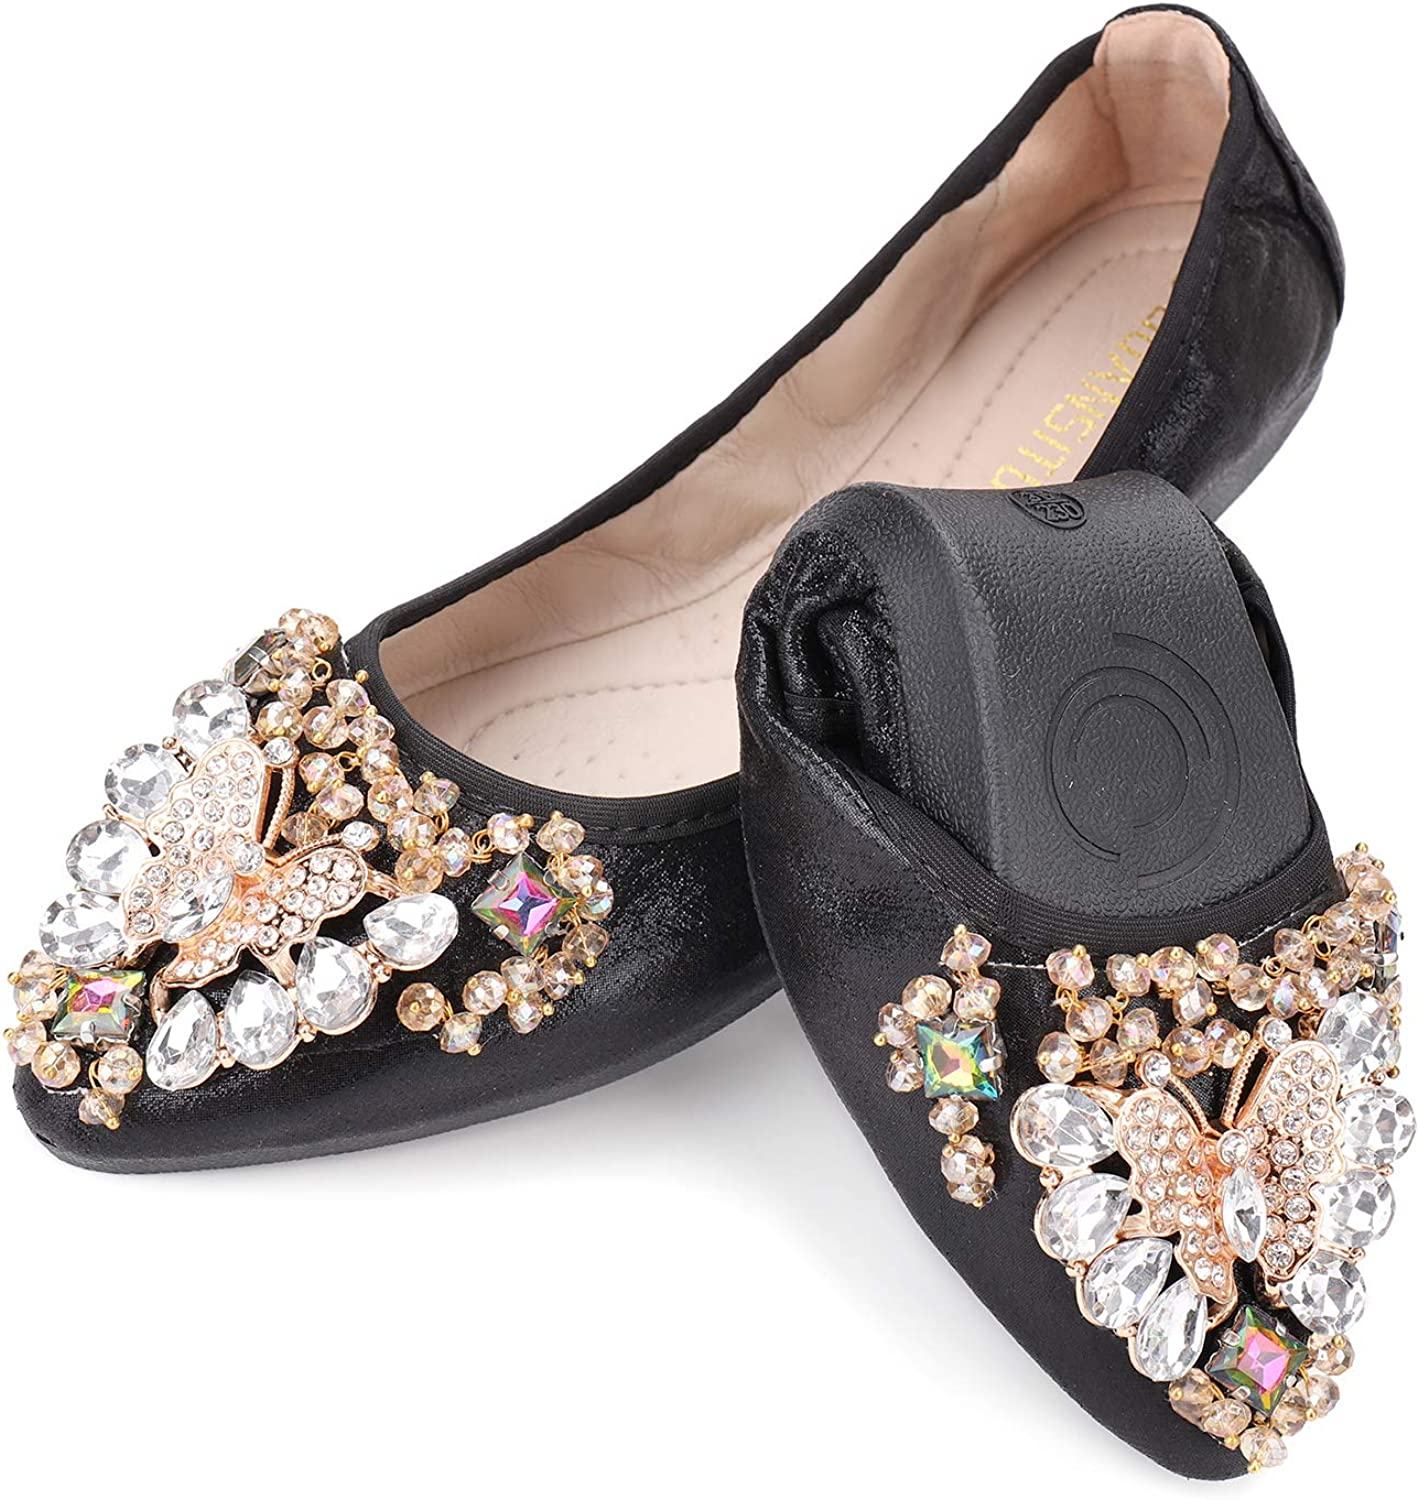 Amazon Com Women S Foldable Ballet Flats Casual Rhinestone Sparkly Wedding Ballerina Shoe Comfort Slip On Flat Shoes Flats